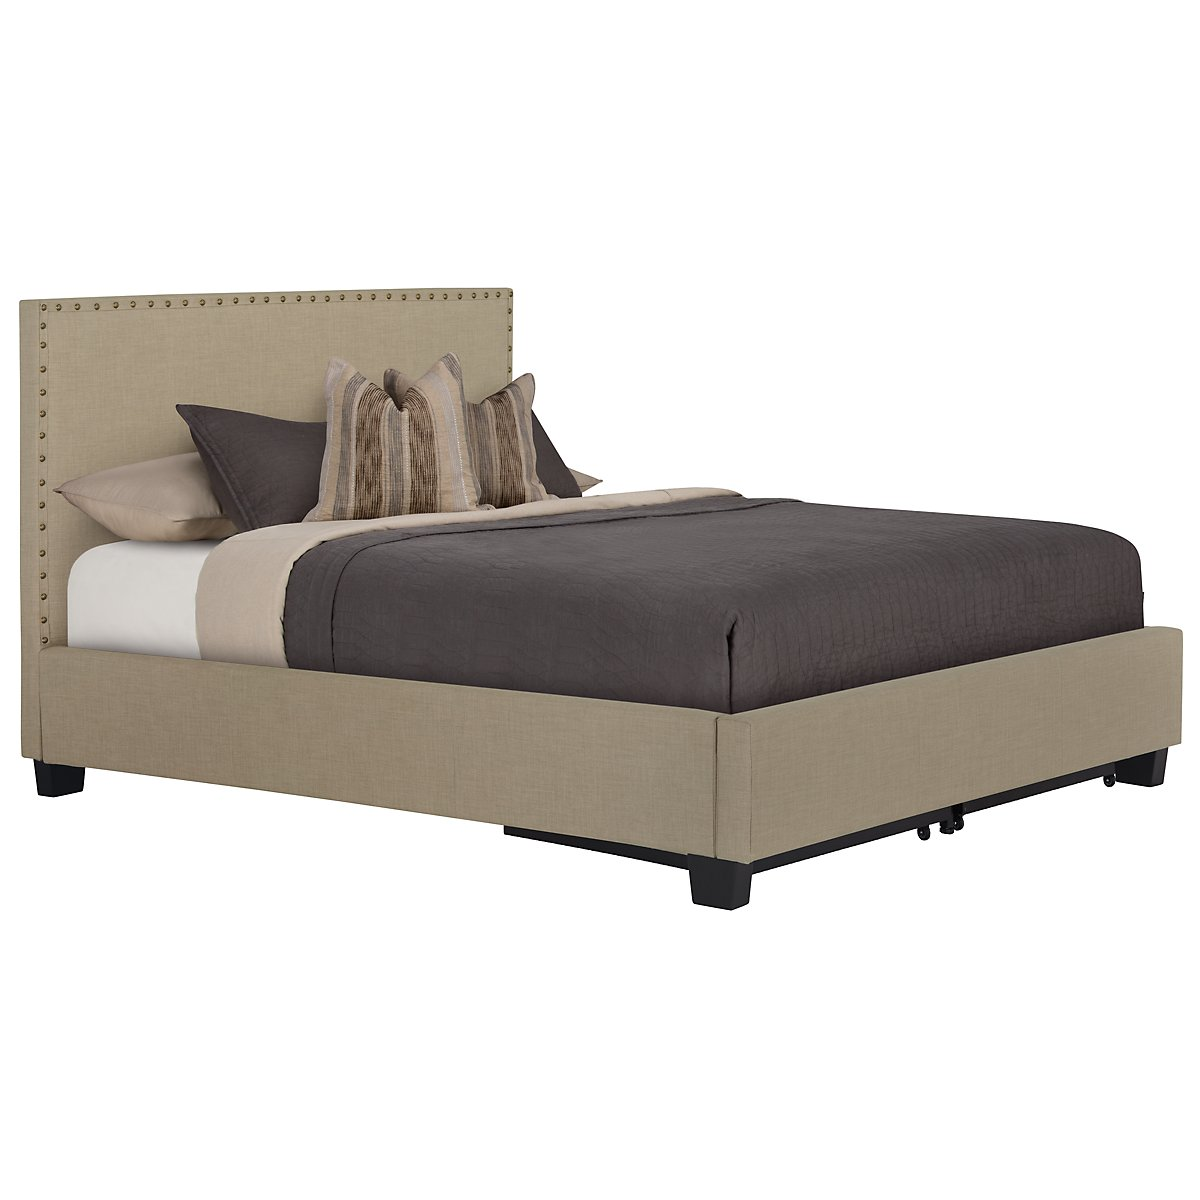 Holden Taupe Upholstered Platform Storage Bed